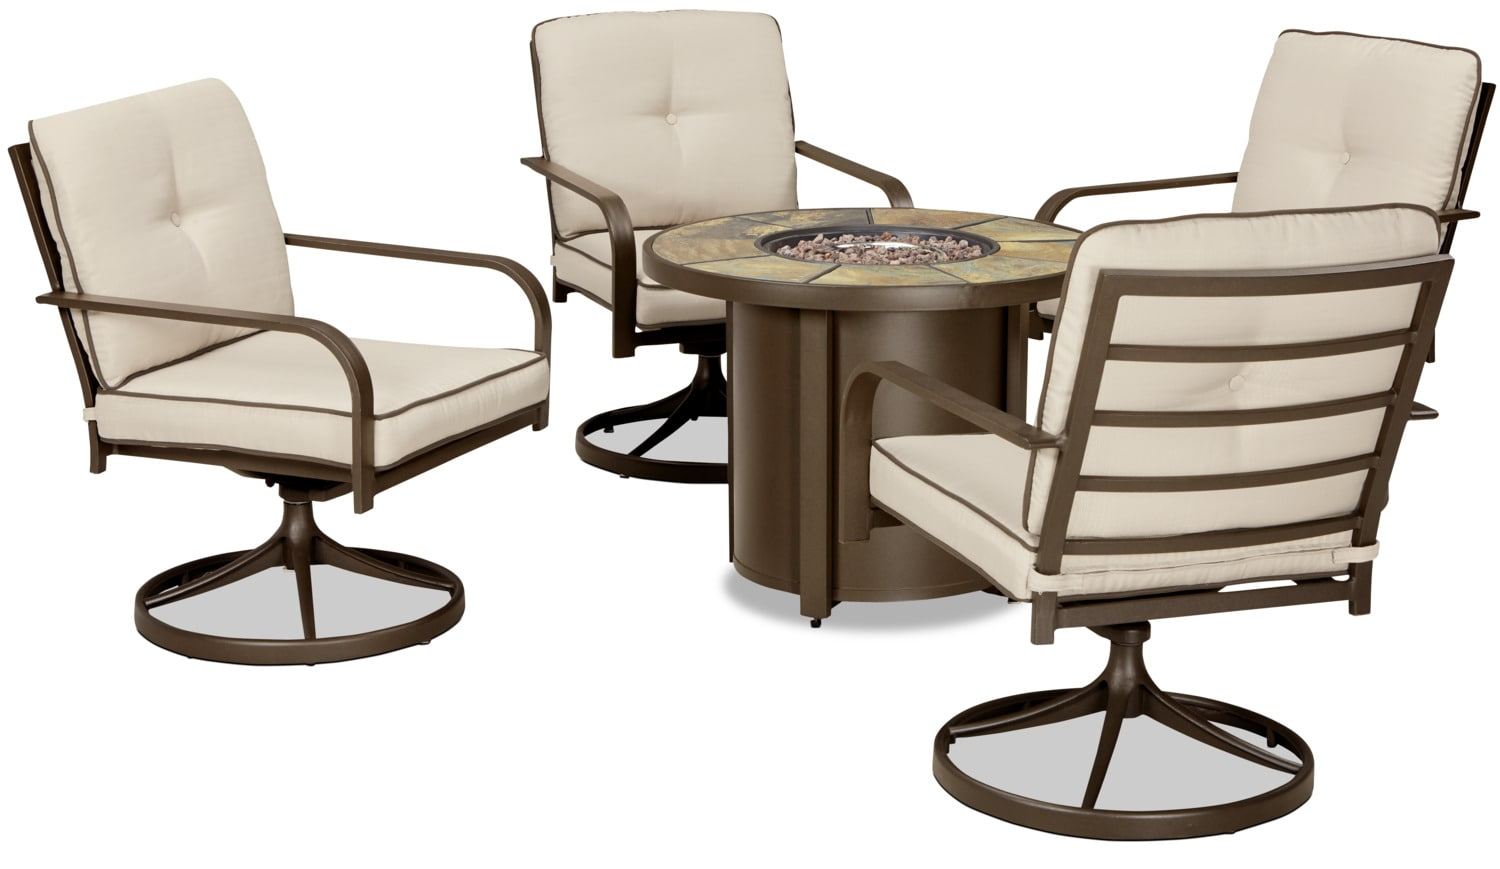 Outdoor Furniture - Predmore 5-Piece Patio Set with Fire Table